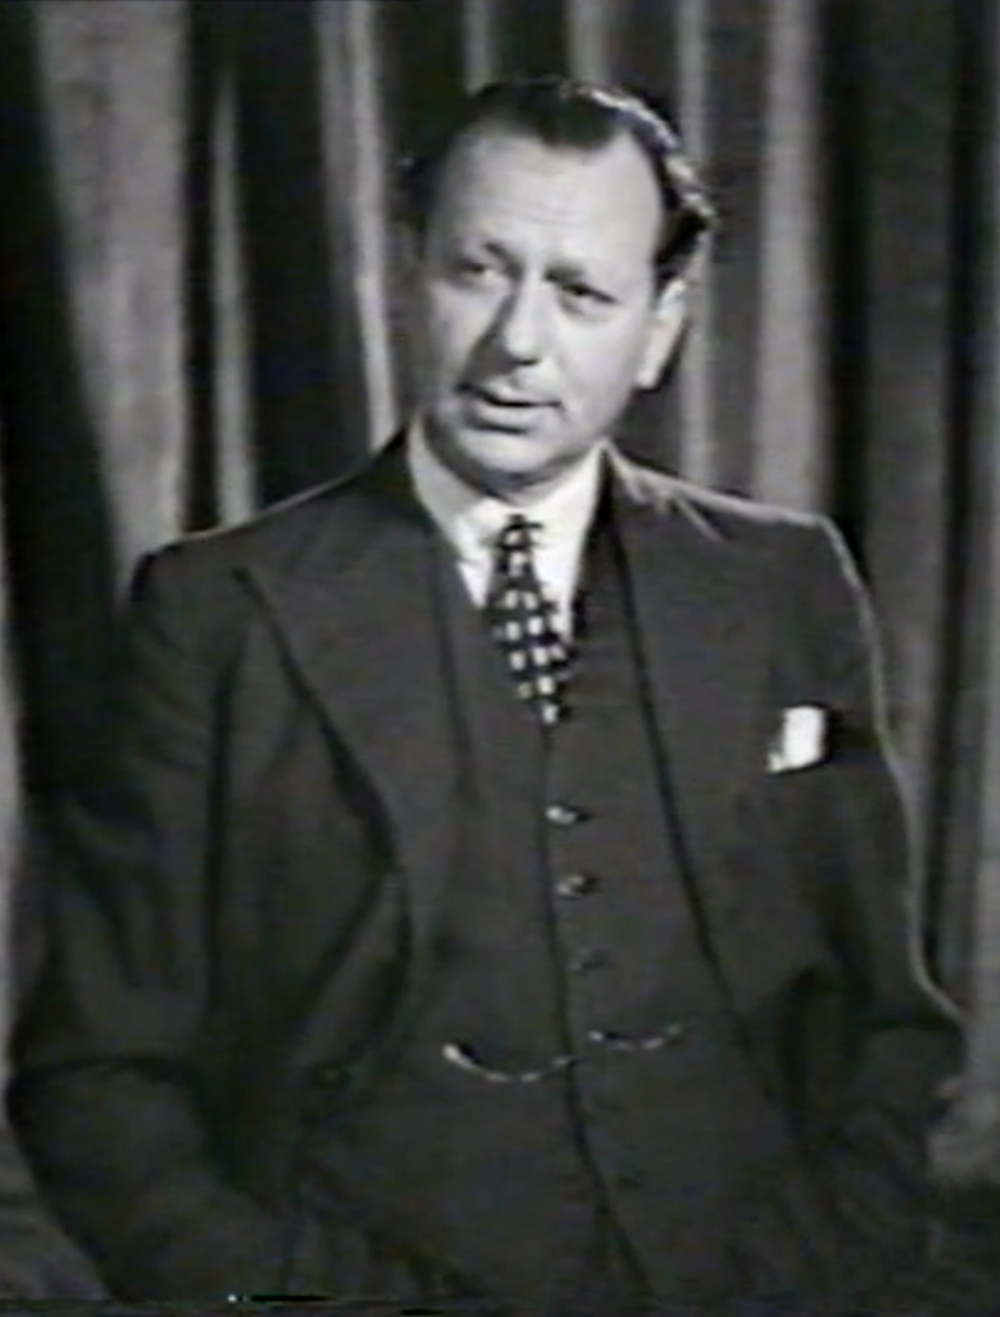 Still from a film of Montagu Marks speaking on Cinesound Review, Australia December 1937